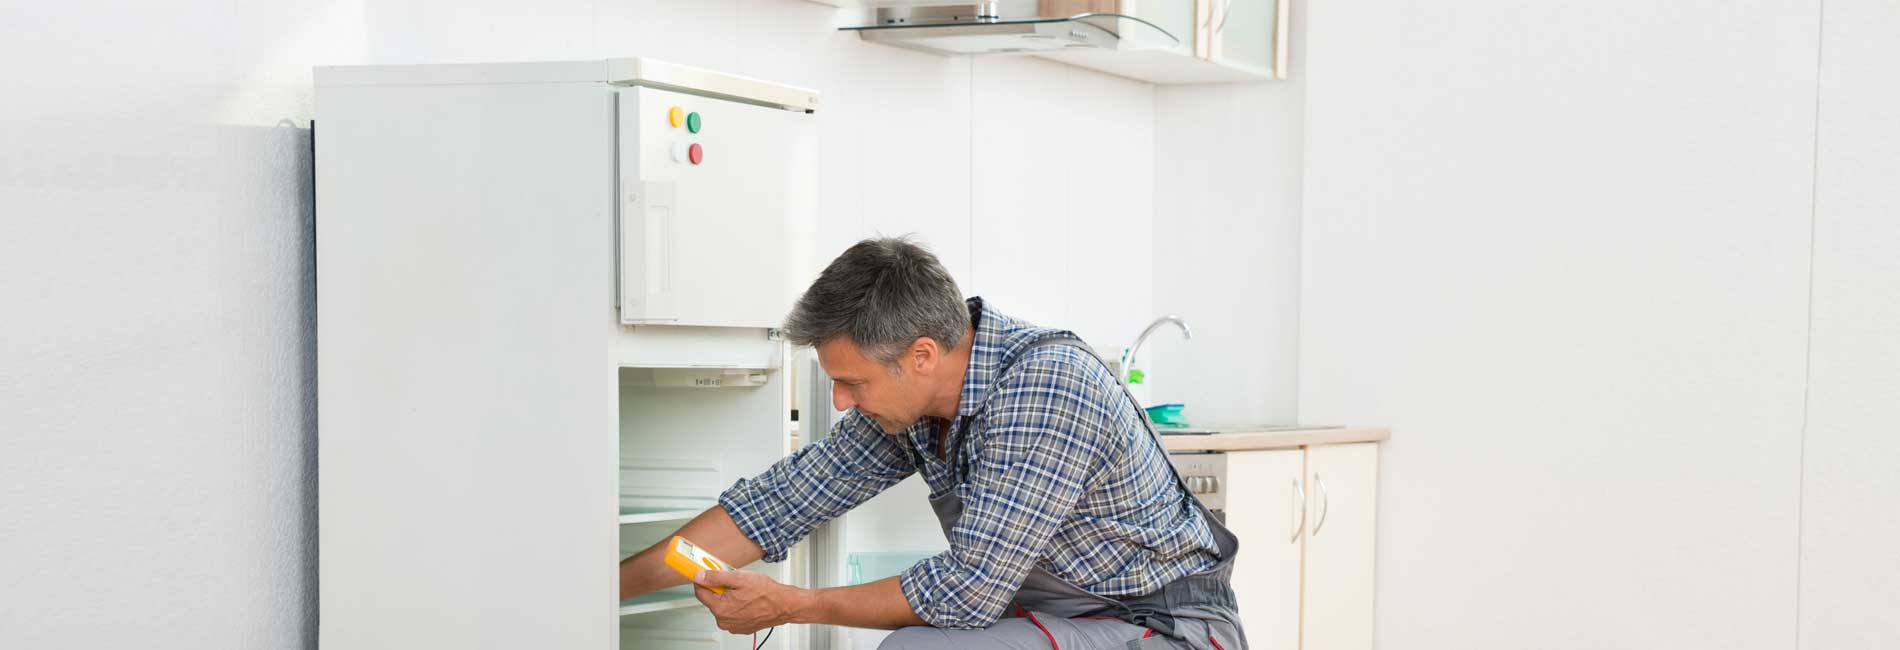 Refrigerator Repair in Chinmaya Nagar